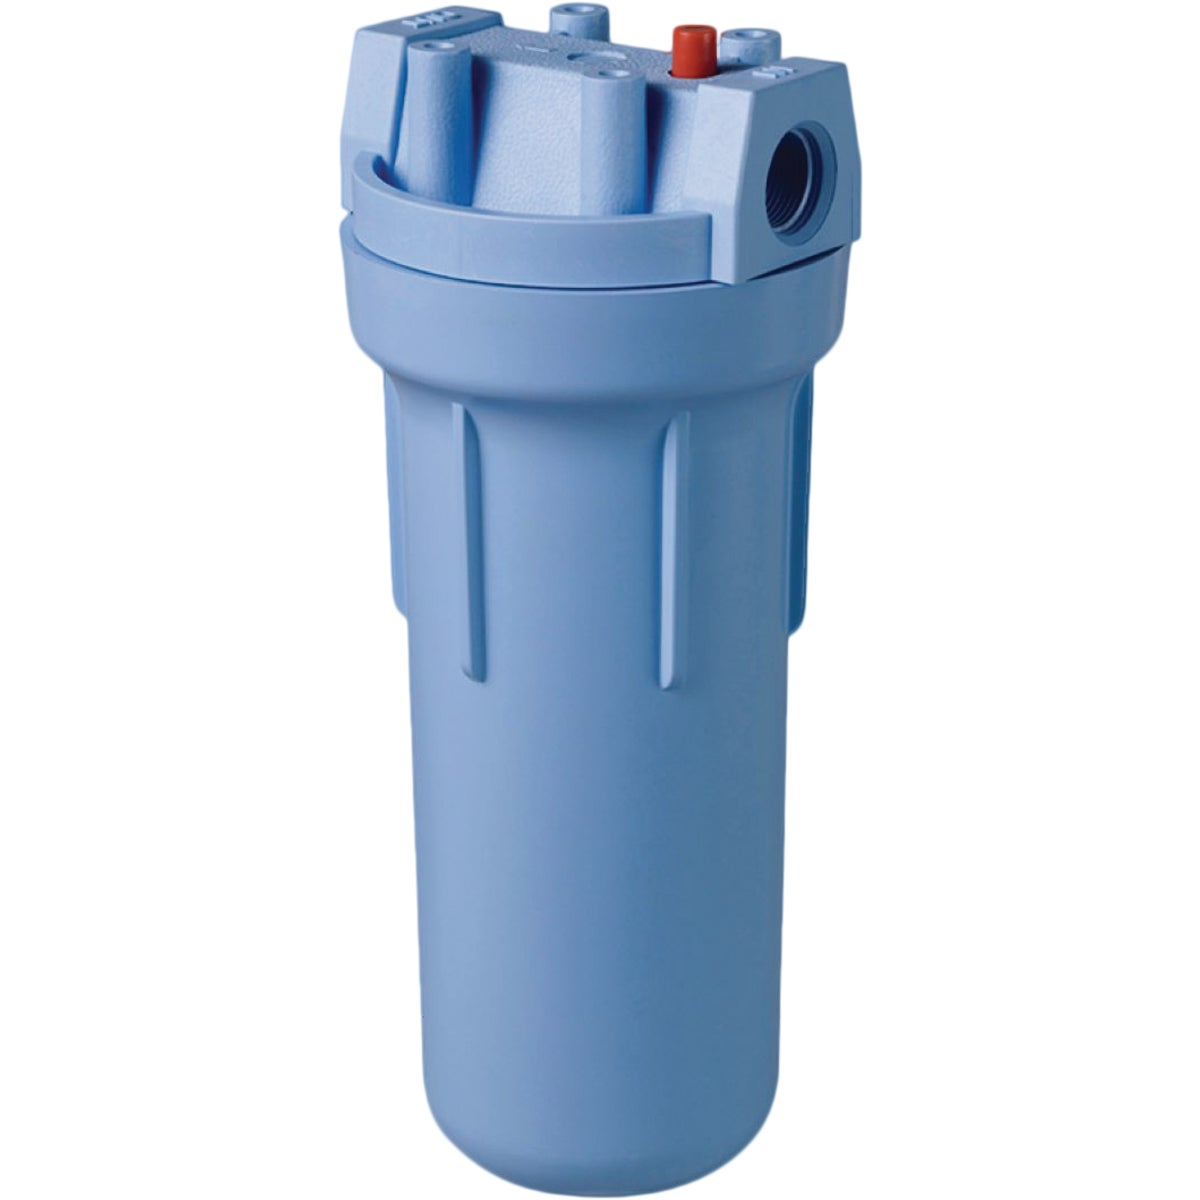 WATER FILTER - HF150A by Culligan